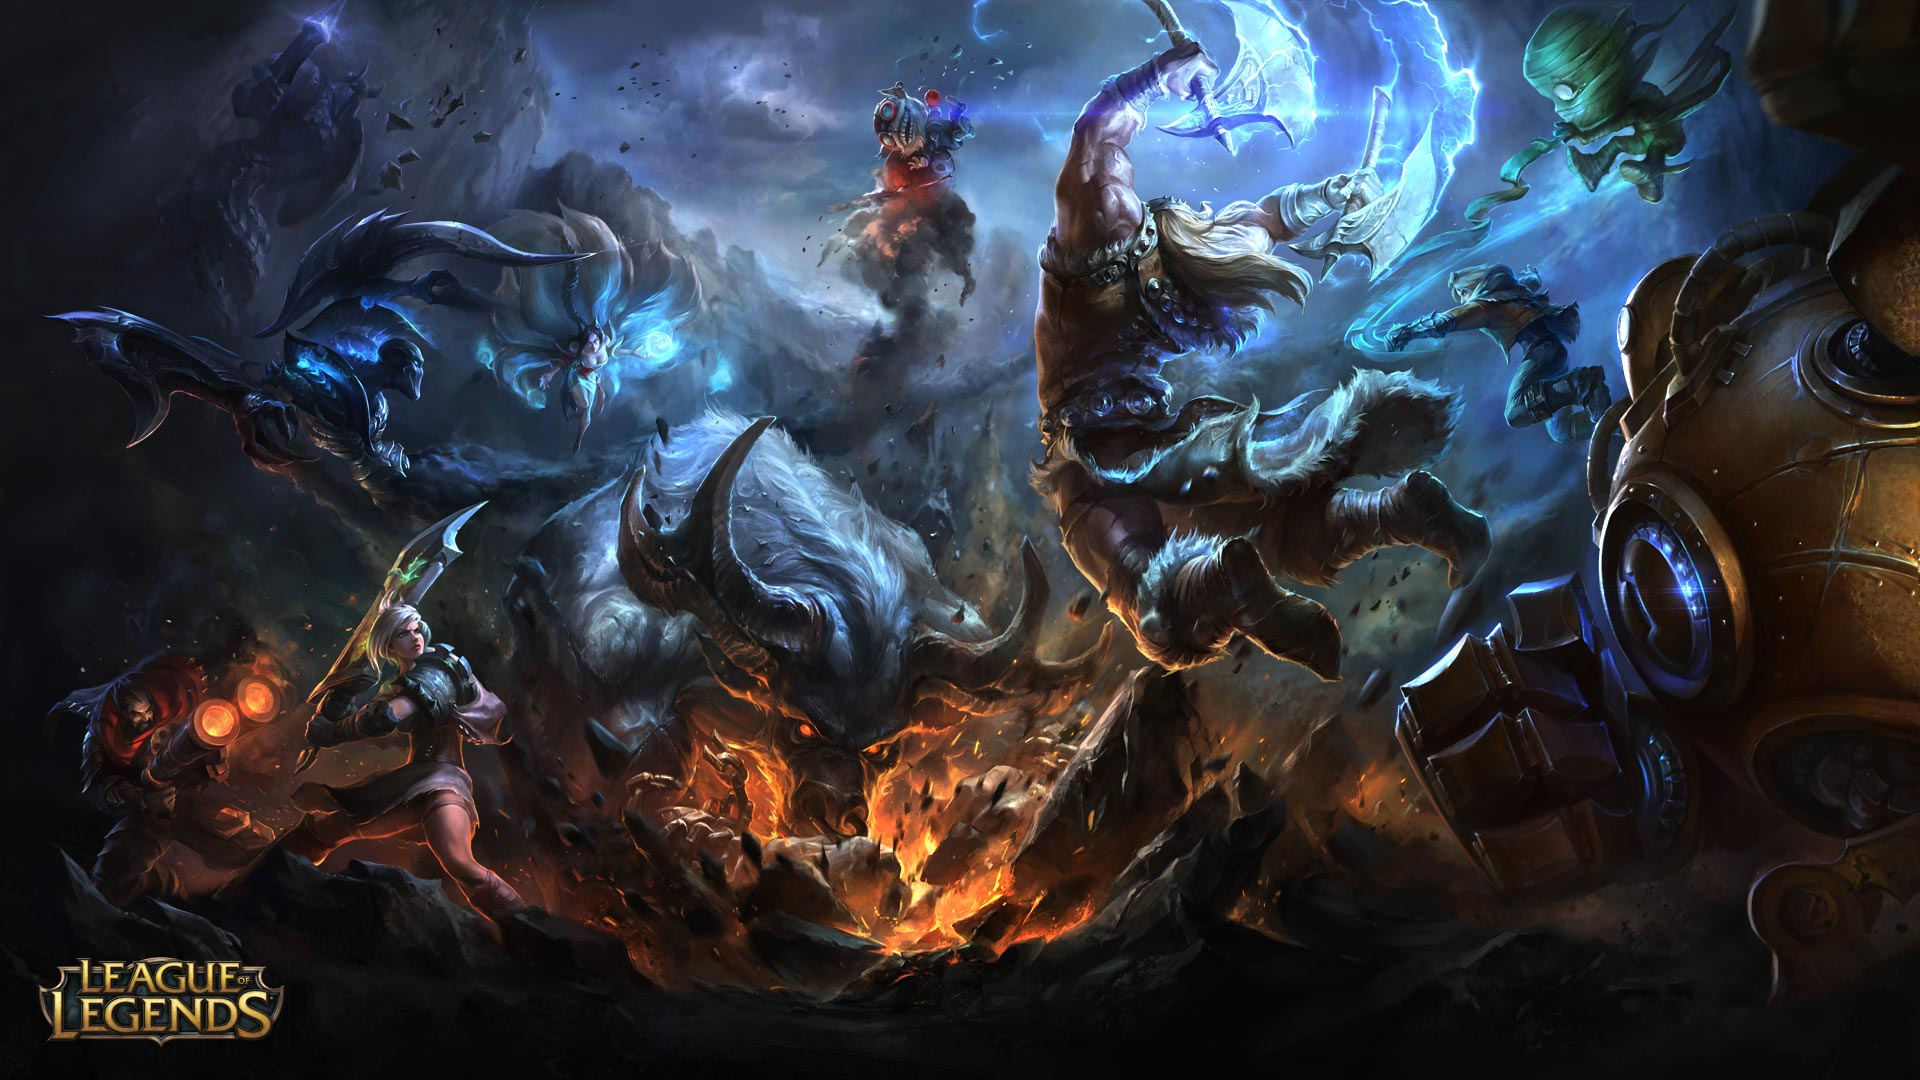 Download Now League of Legends Patch 5 6 to Get New Buffs to